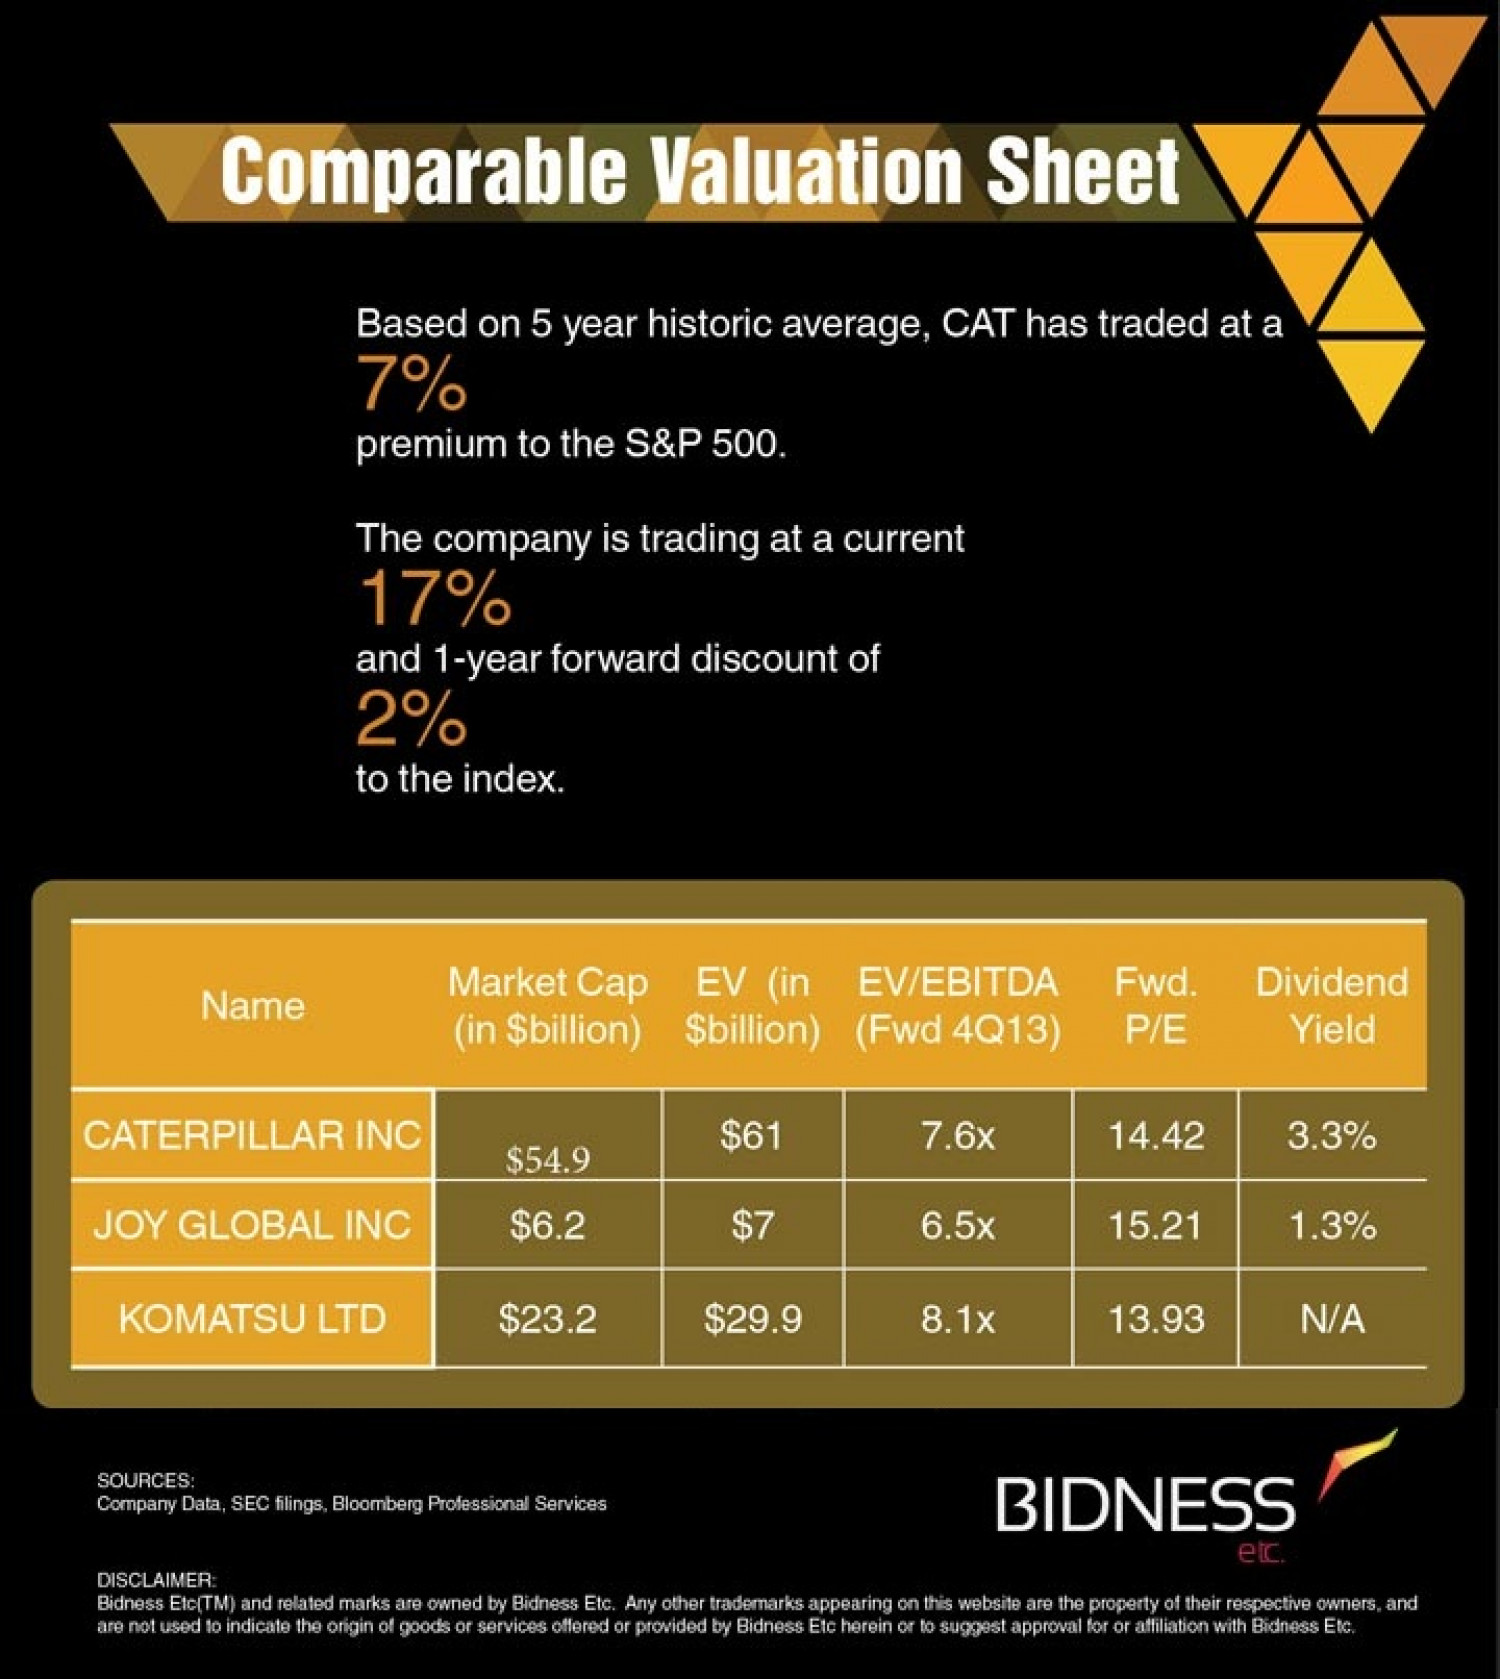 Caterpillar (CAT) Valuation Sheet Infographic